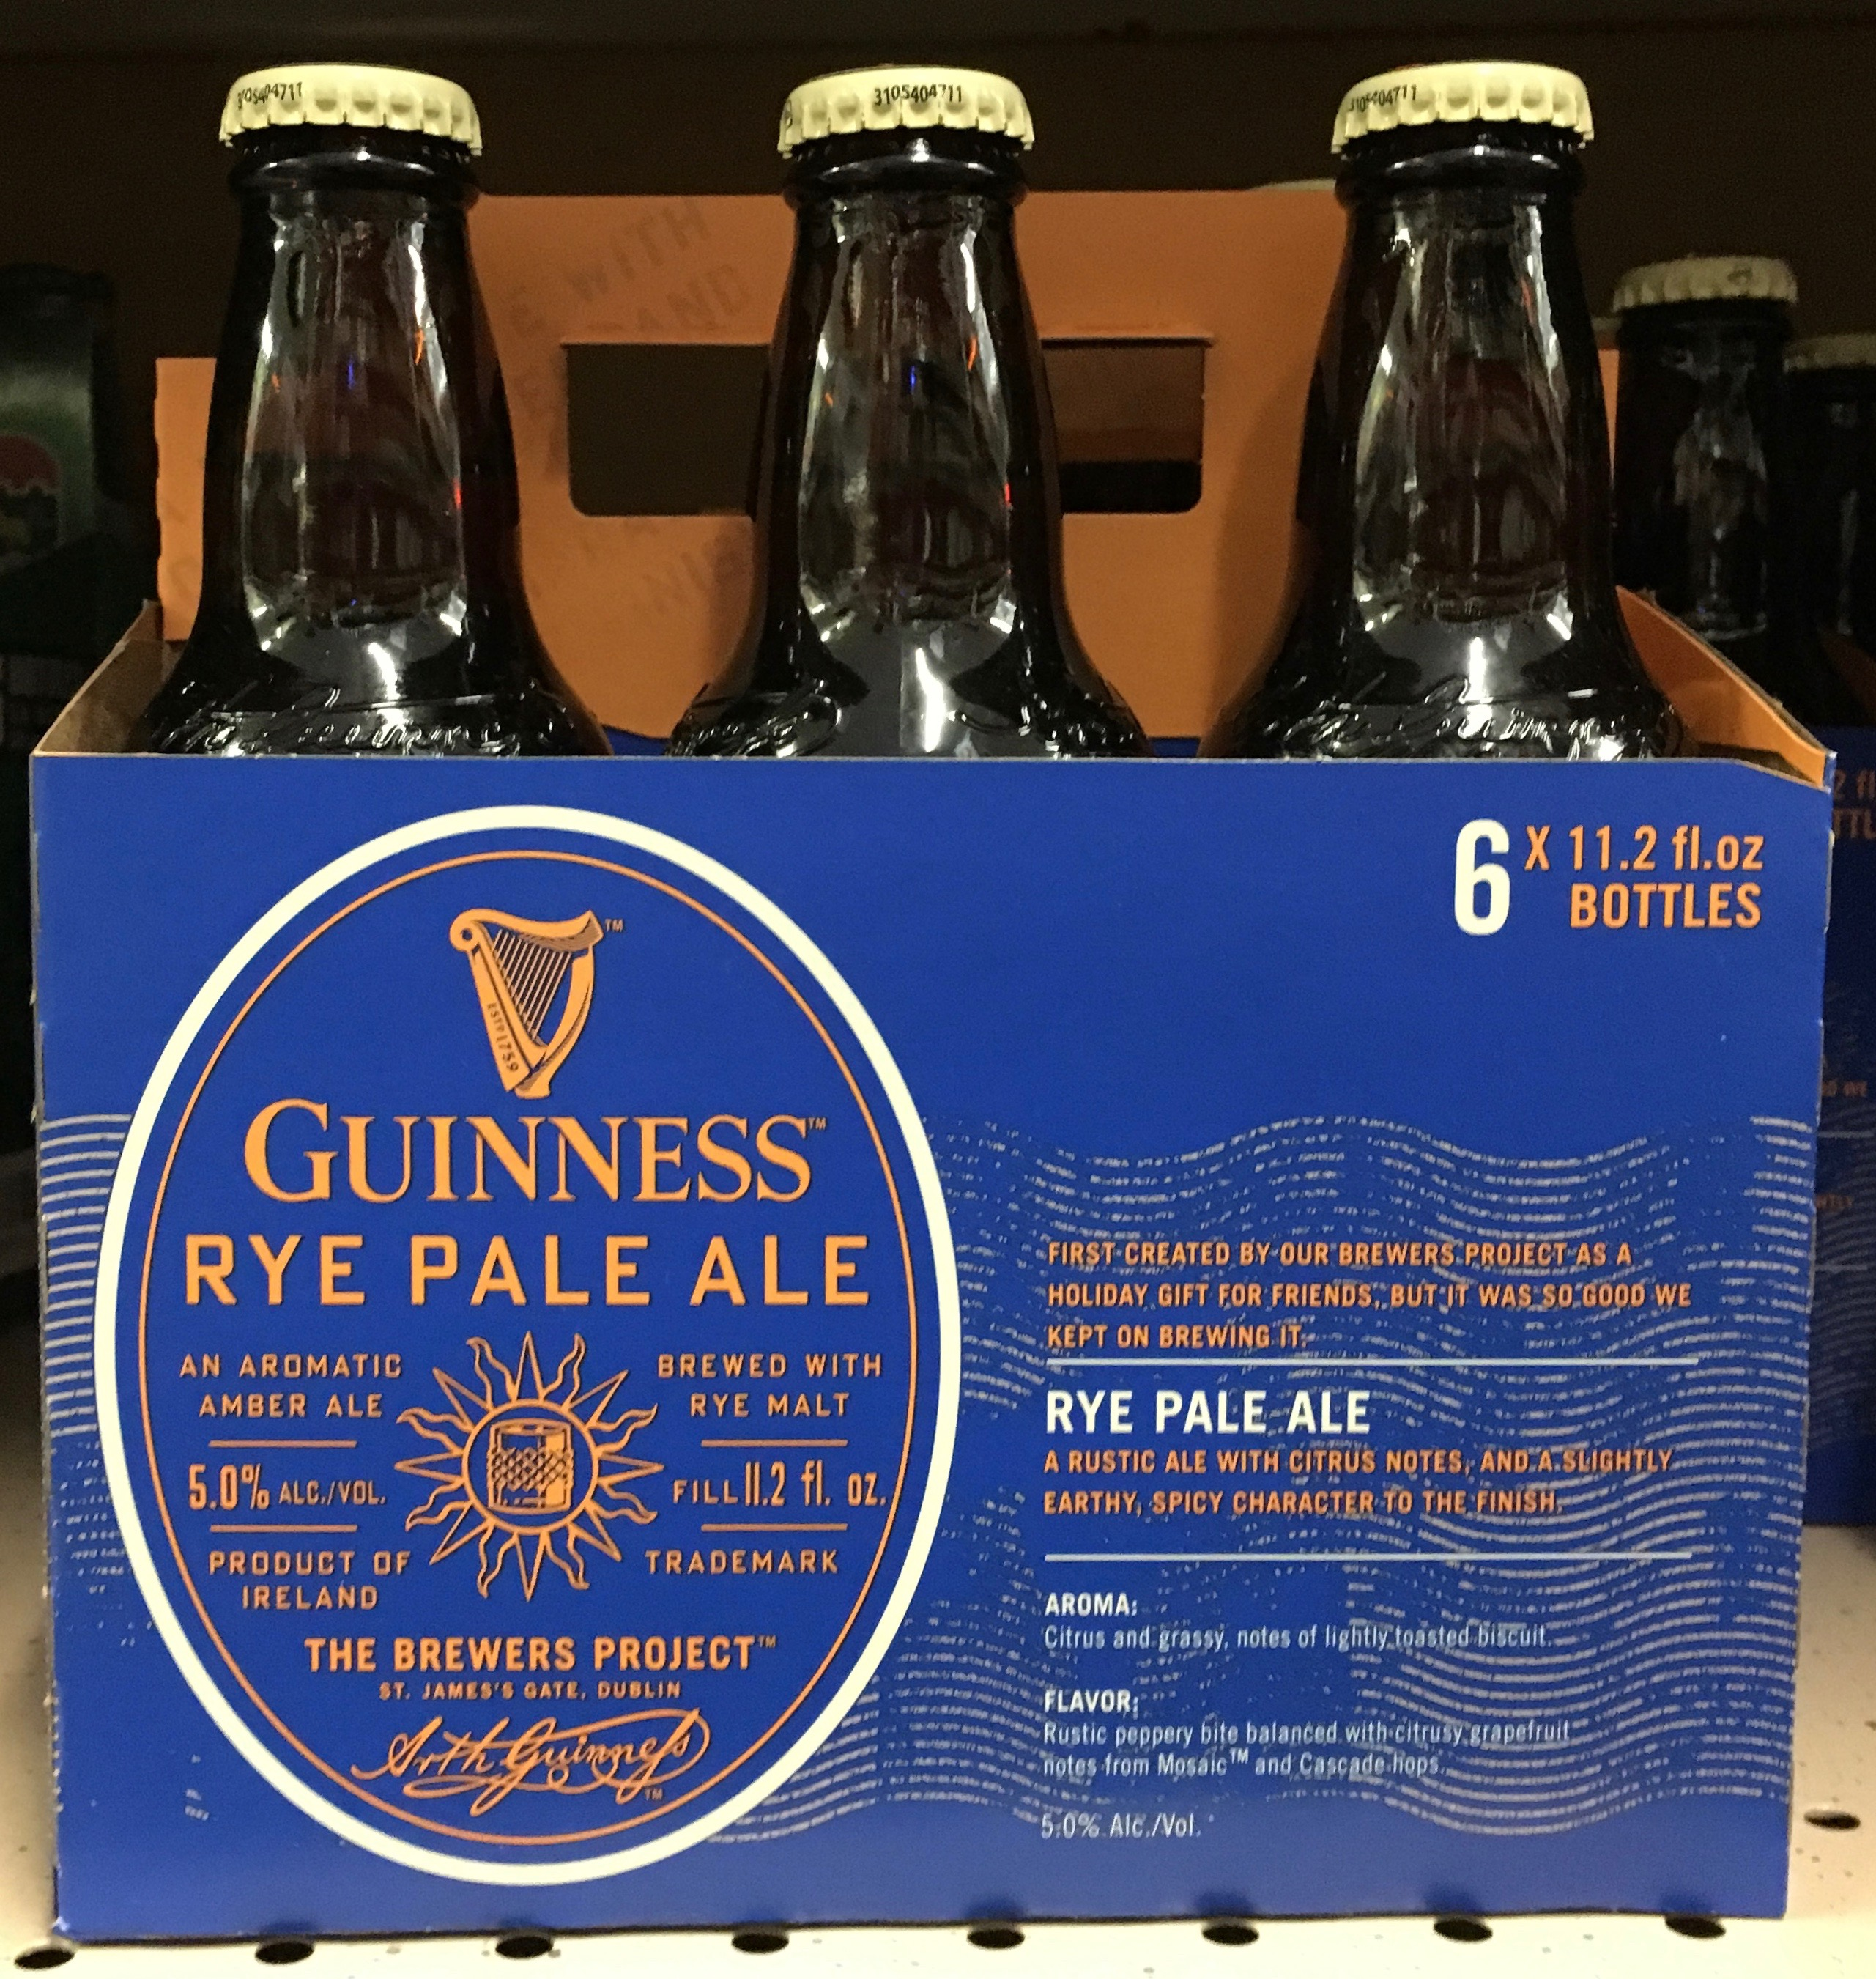 A six pack of Guinness Rye Pale Ale found at John's Marketplace in Southwest Portland.